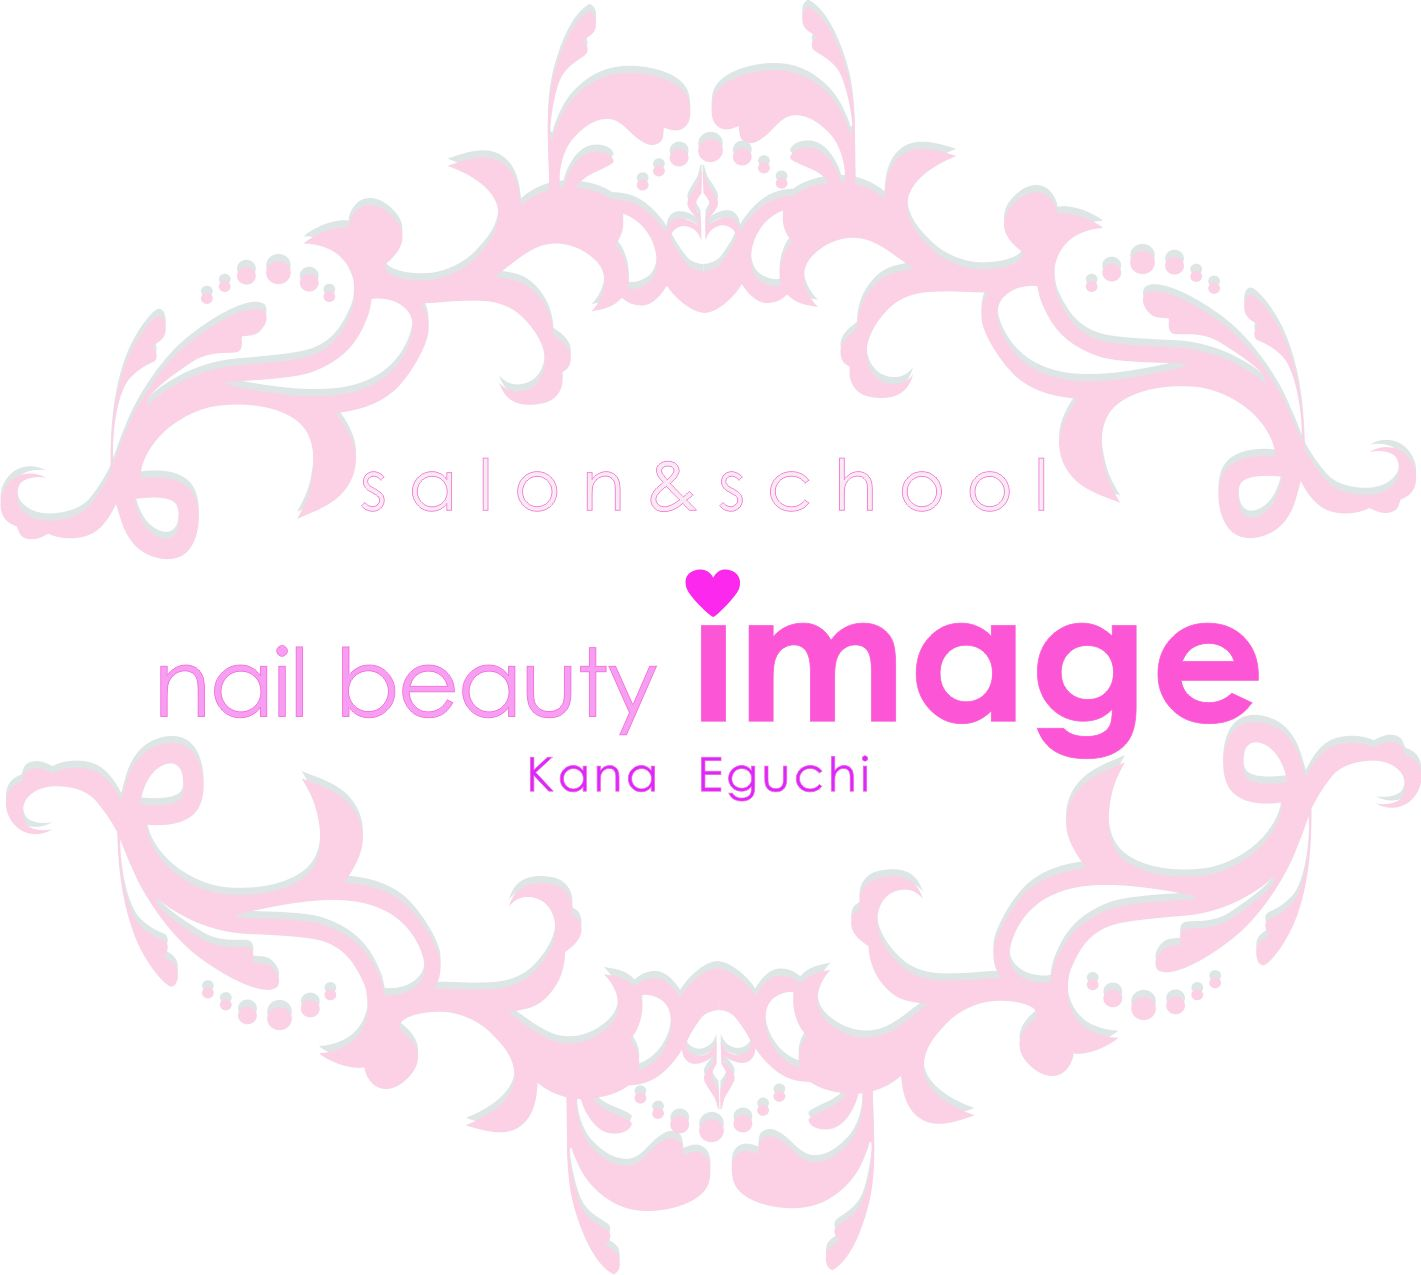 nail beauty image